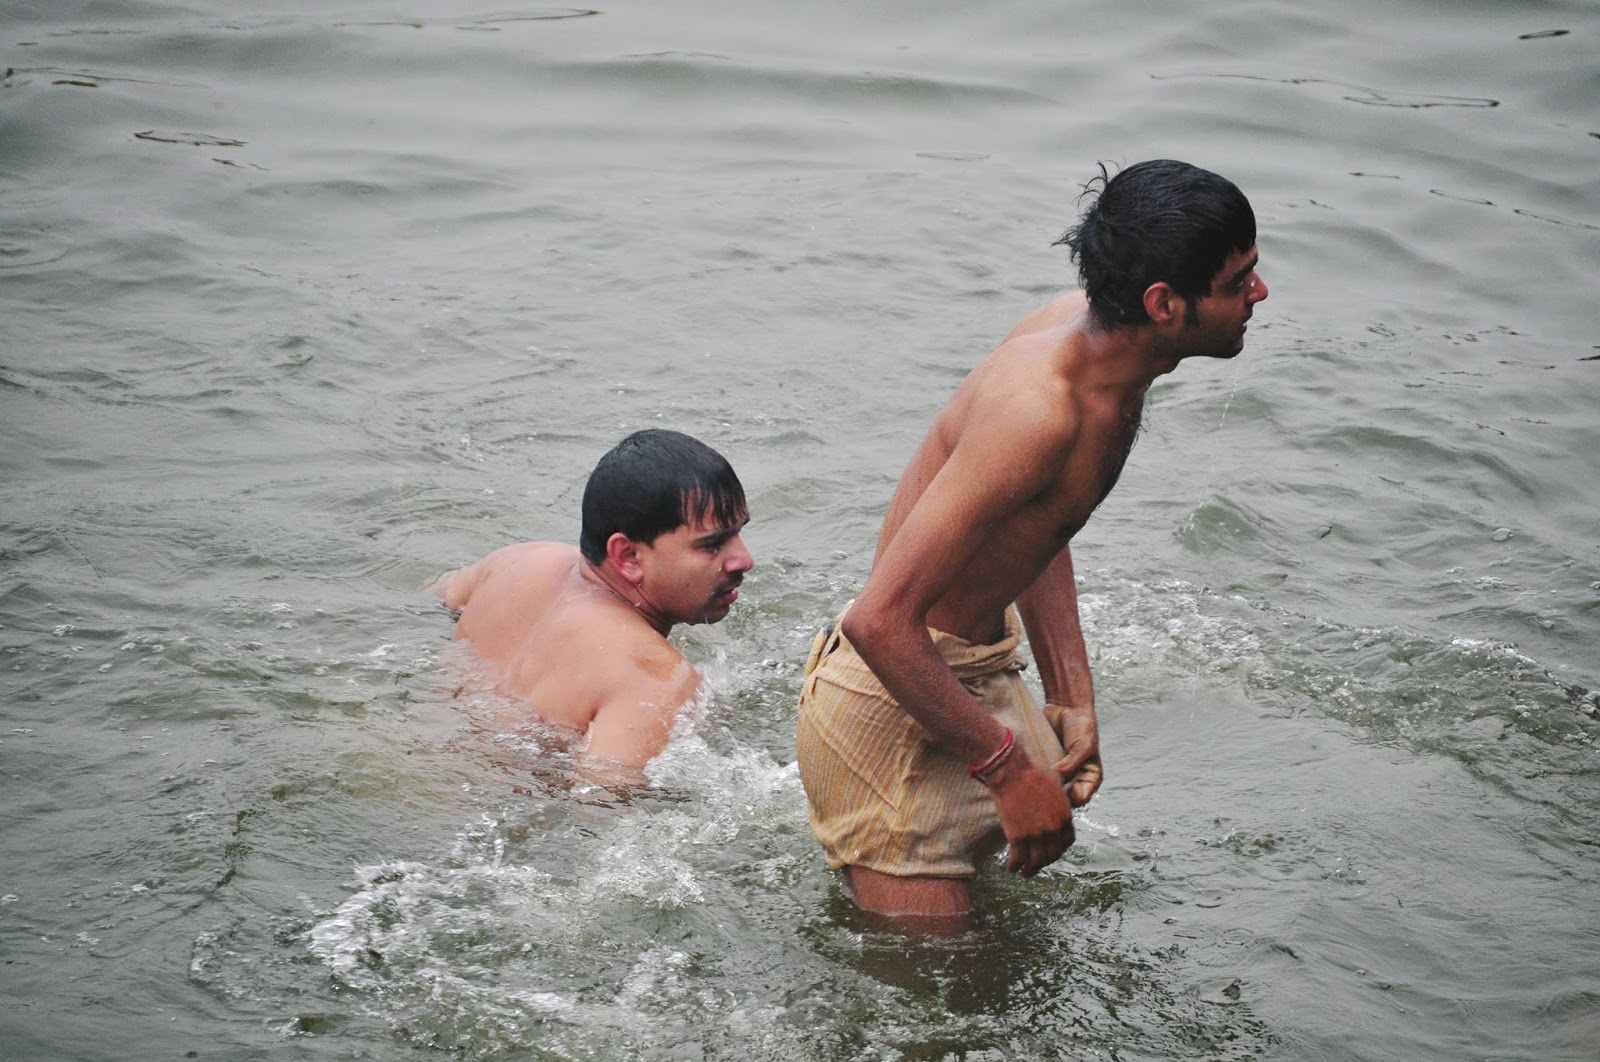 desi male nude on beach